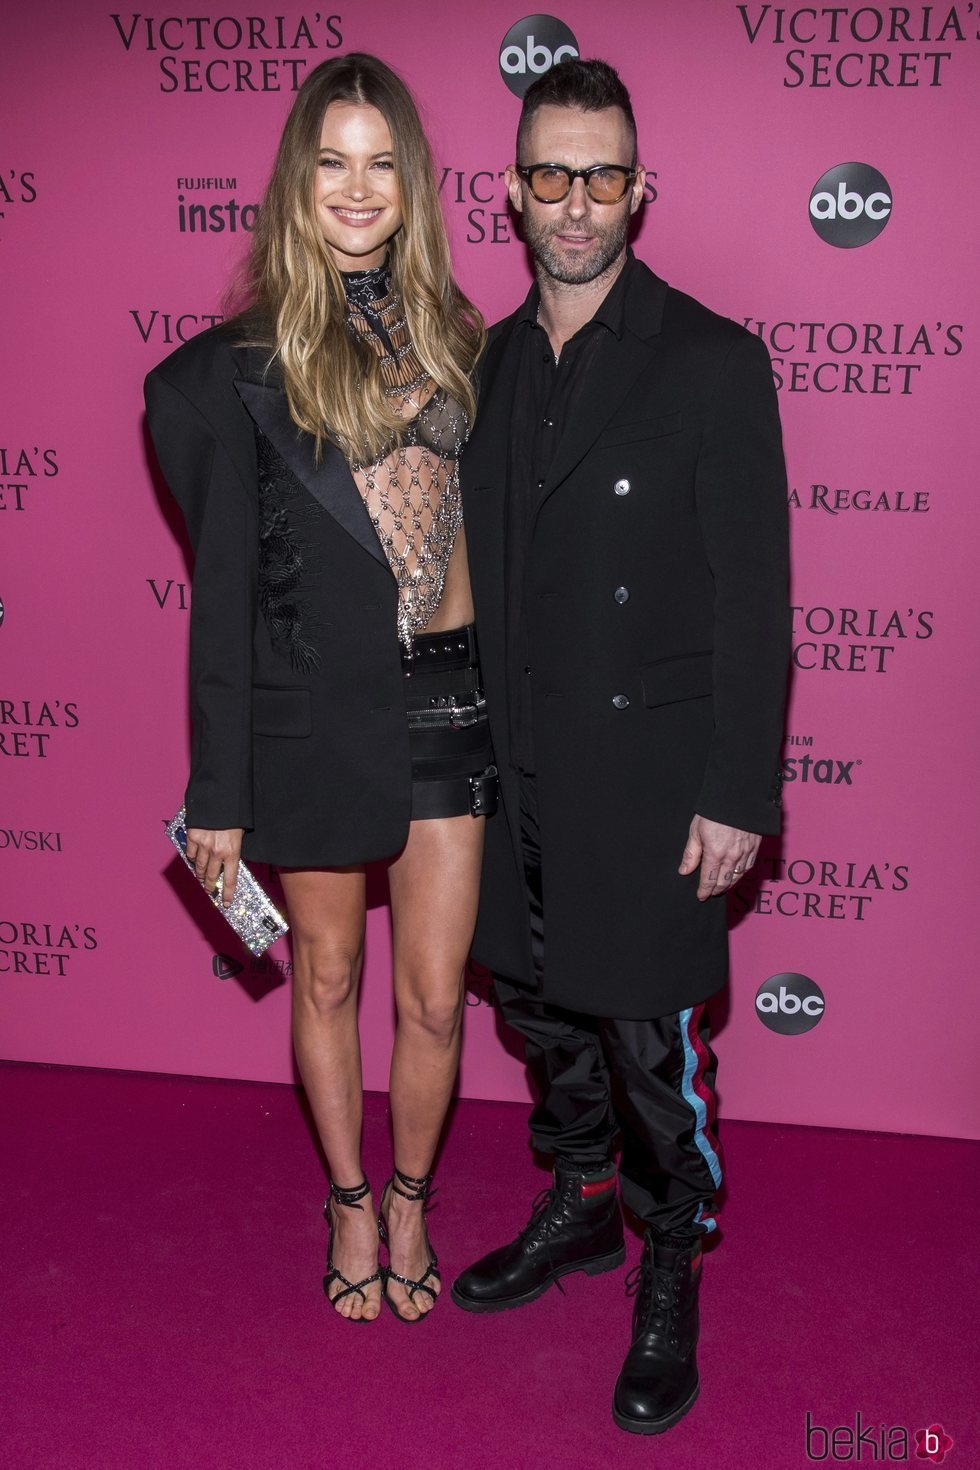 Behati Prinsloo y Adam Levine en la alfombra rosa del Victoria's Secret Fashion Show 2018